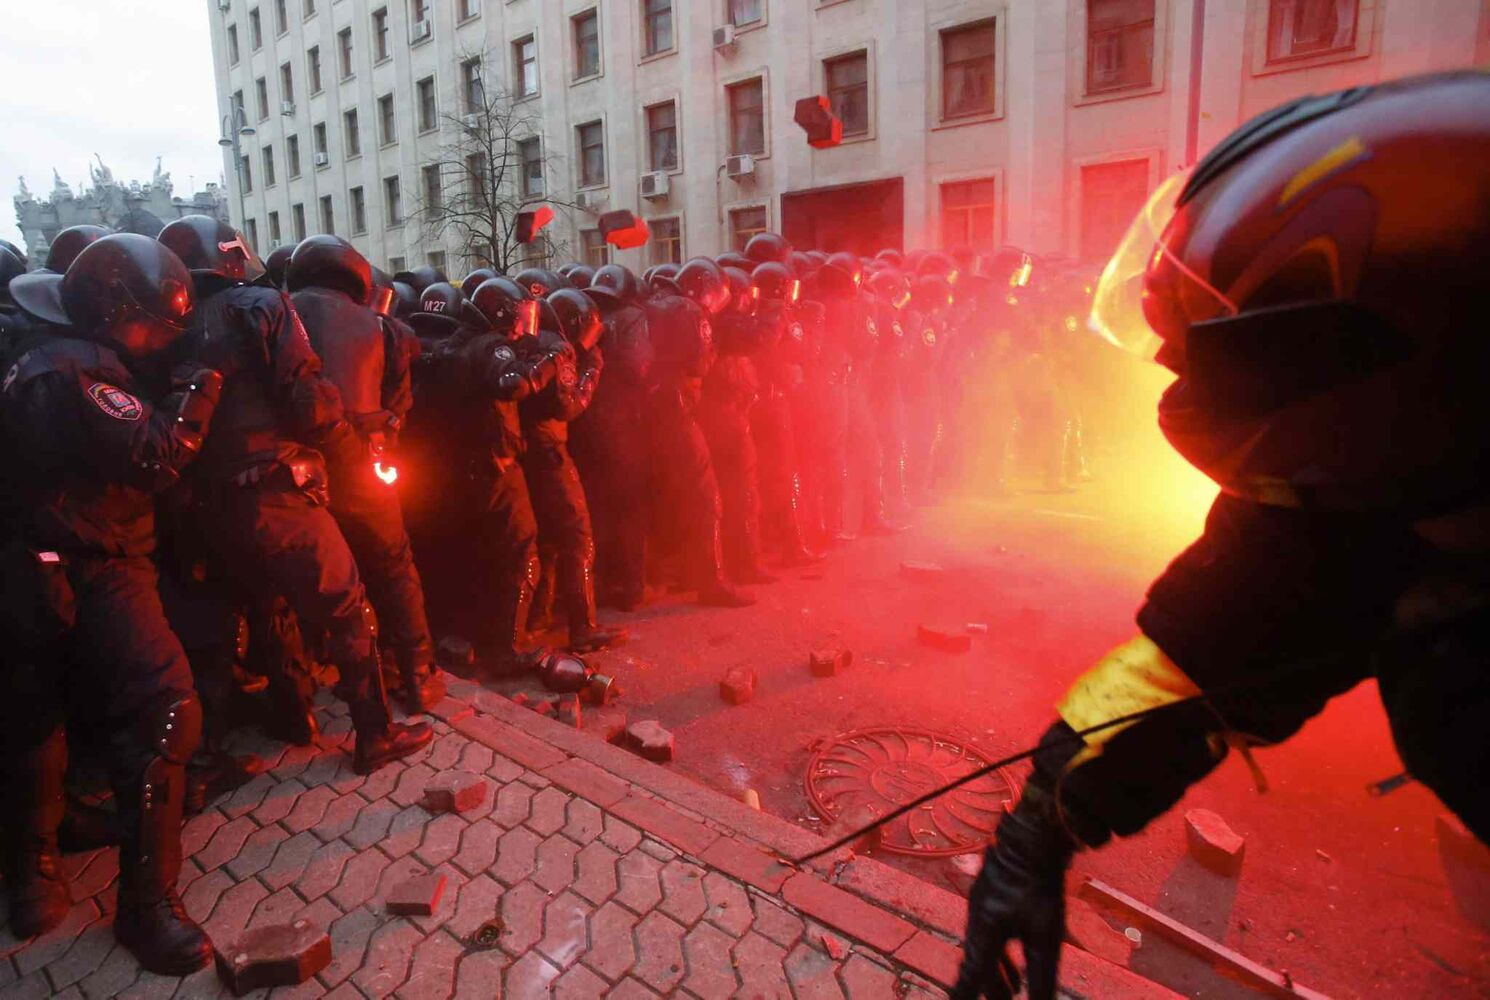 Protesters throw stones as they clash with police outside the presidential administration building in downtown Kiev, Ukraine. More than 100,000 demonstrators chased away police to rally in the center of Ukraine's capital on Sunday.